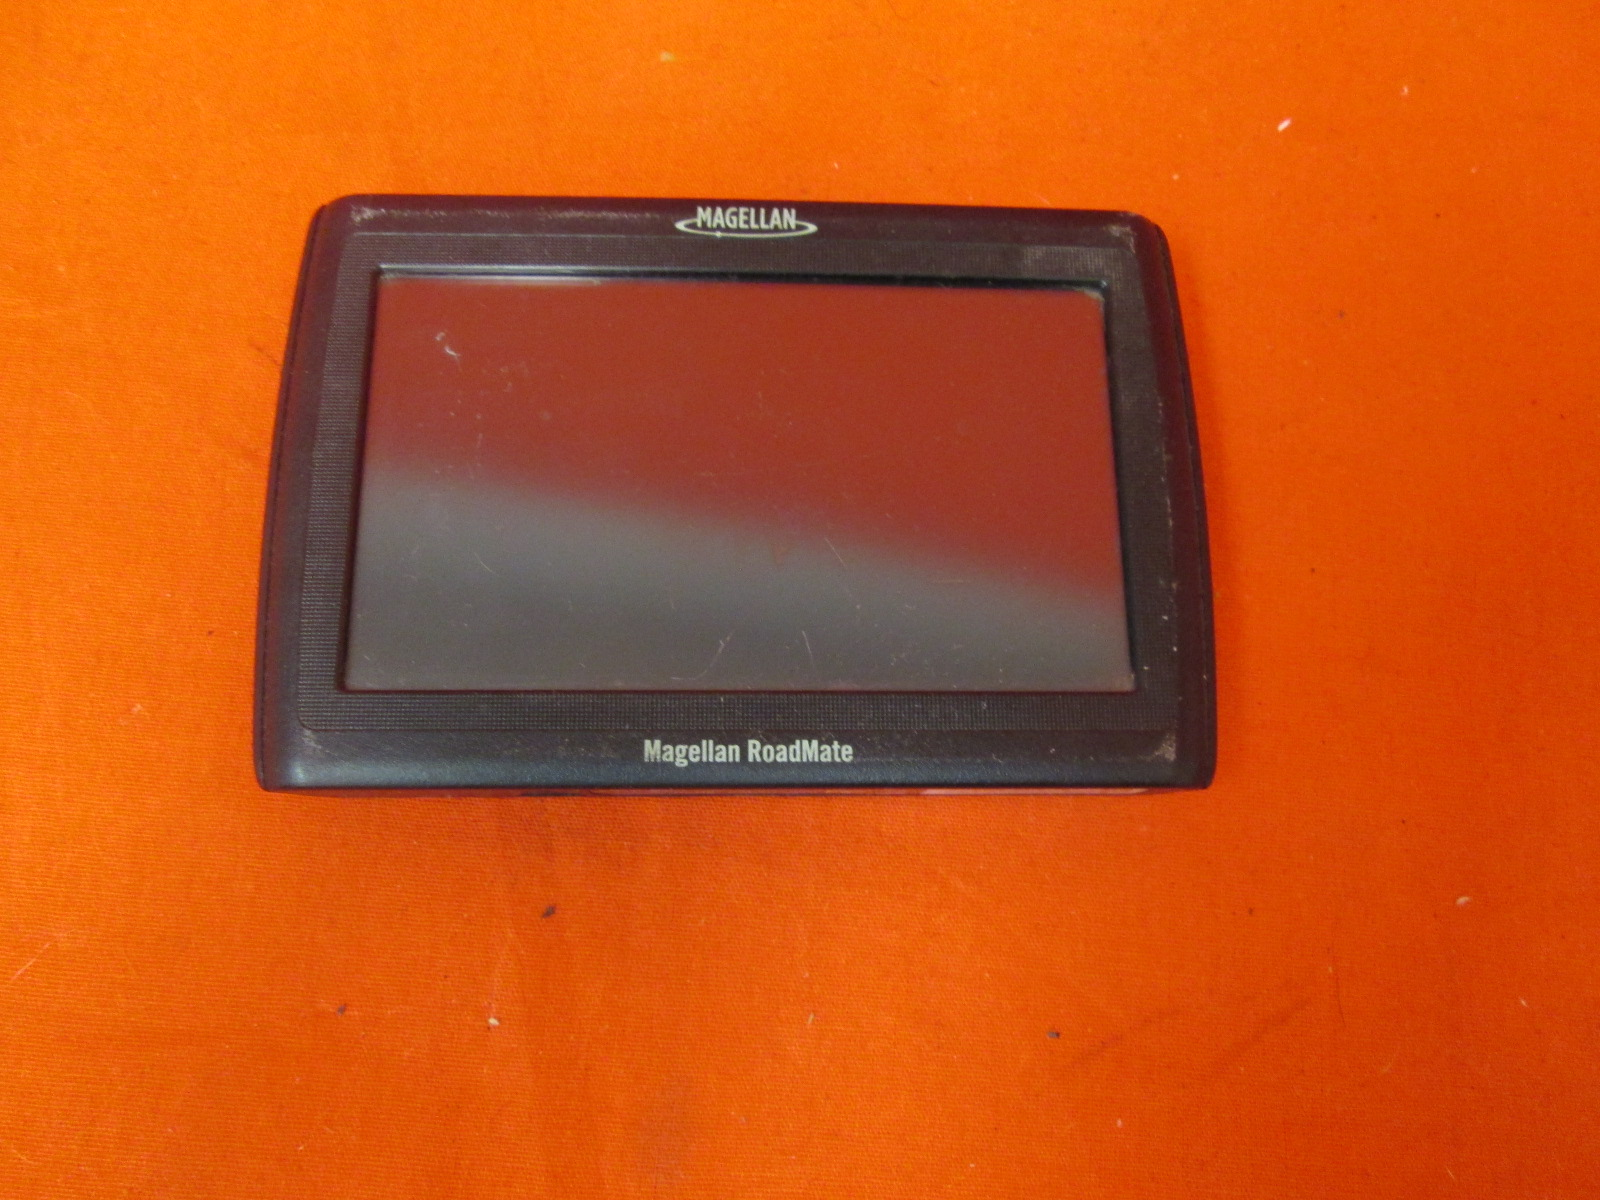 Broken Magellan Roadmate 1424 4.3-inch Widescreen Portable GPS